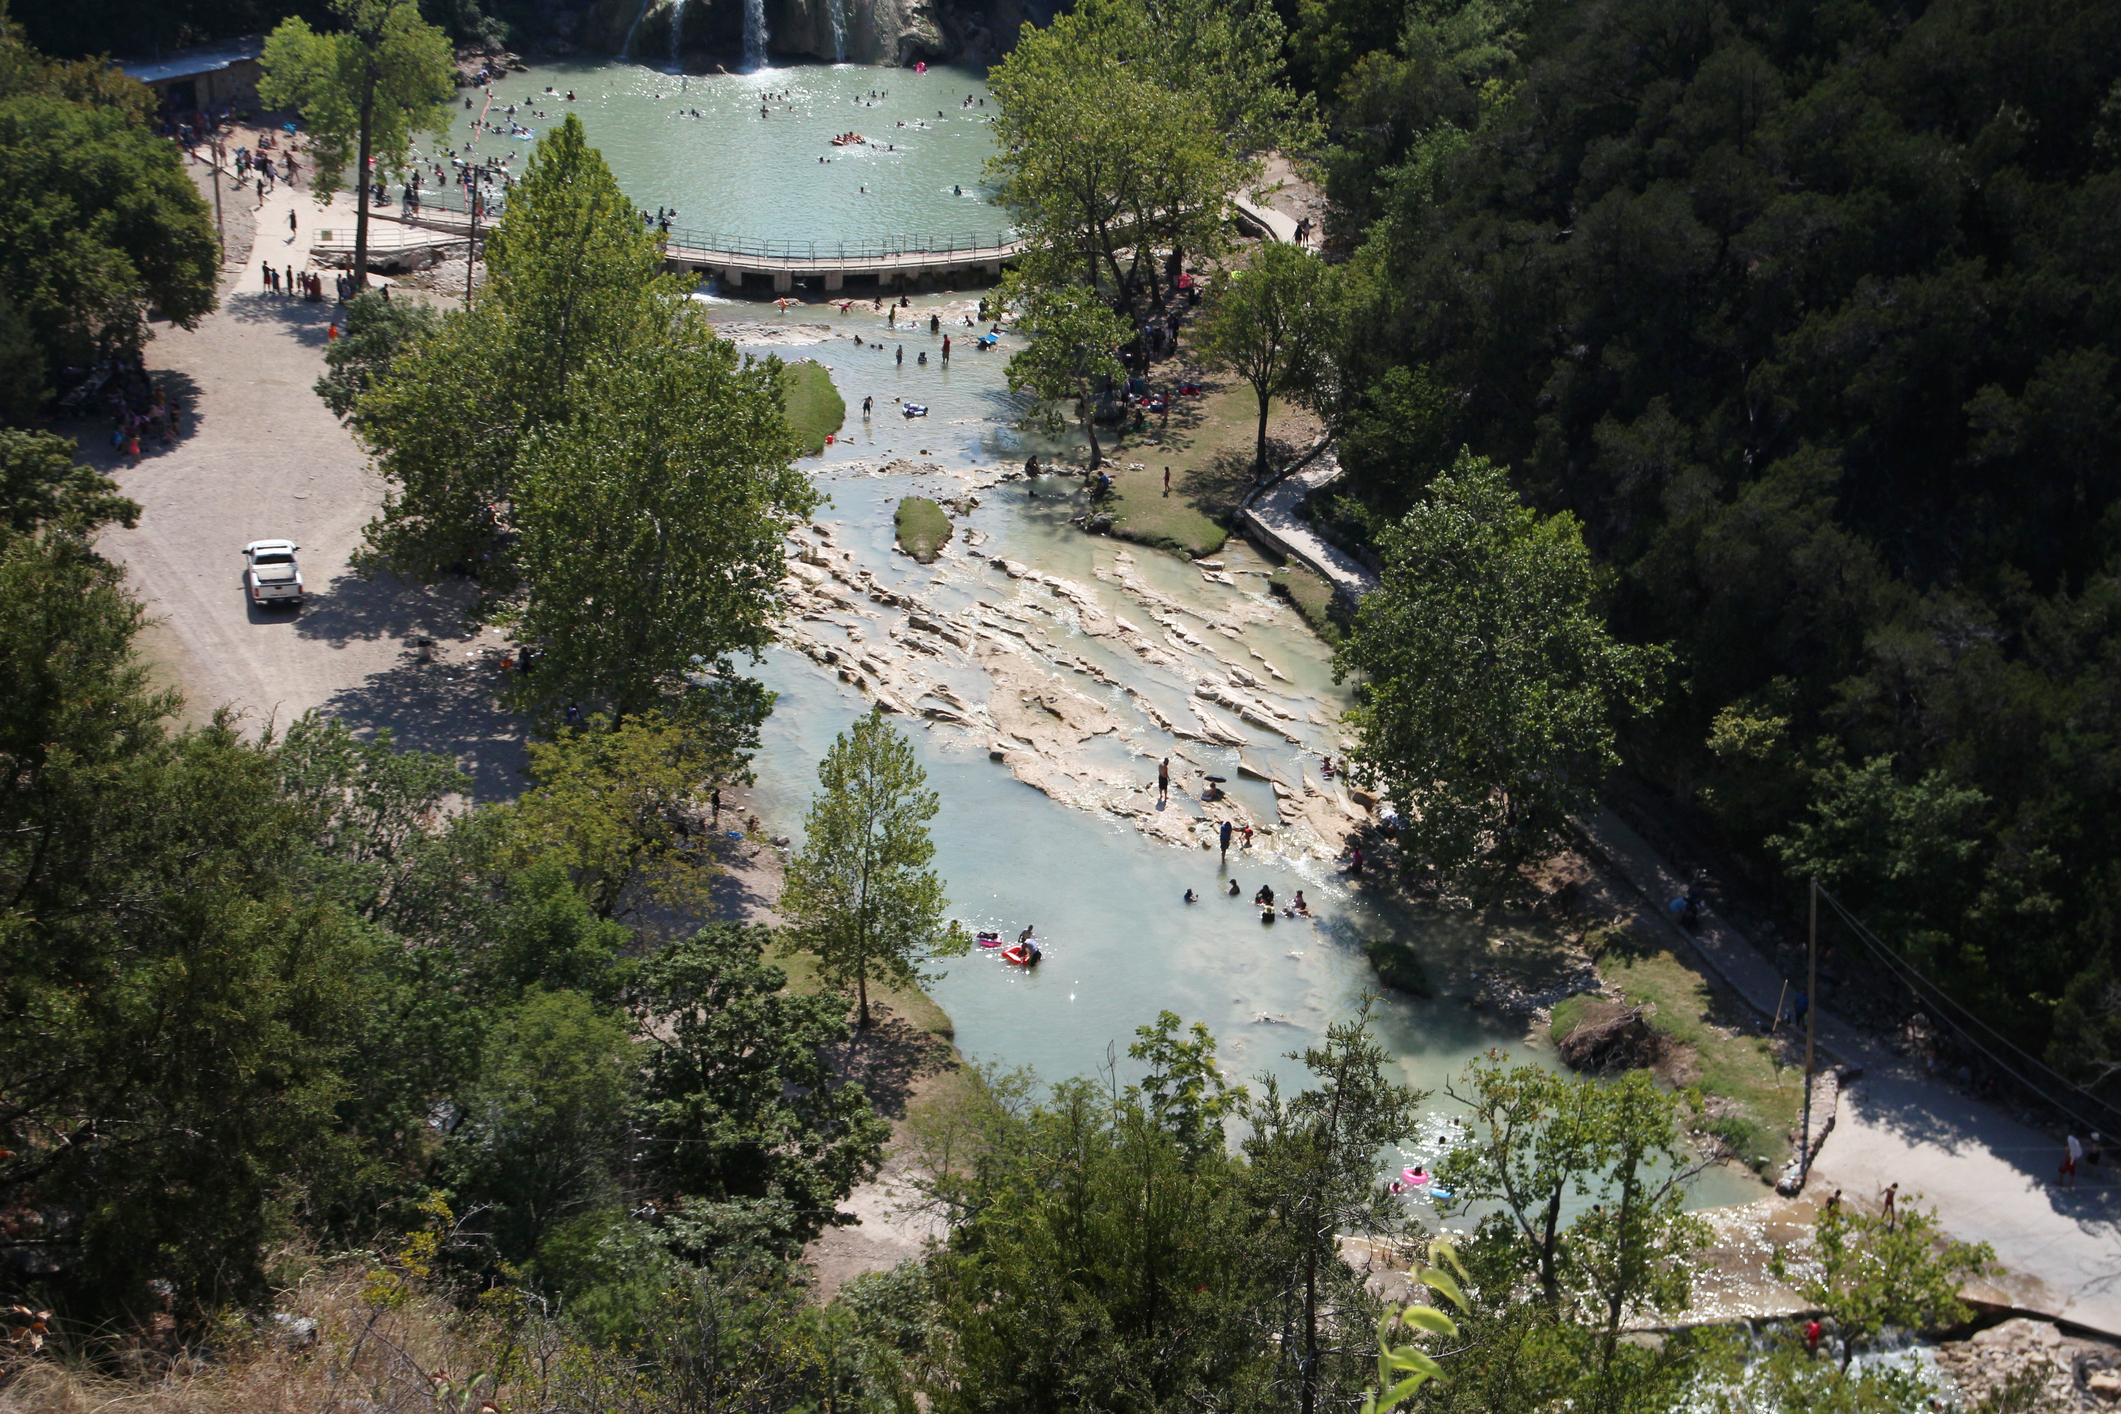 Aerial view of waterfalls and people playing at the food of the cascades